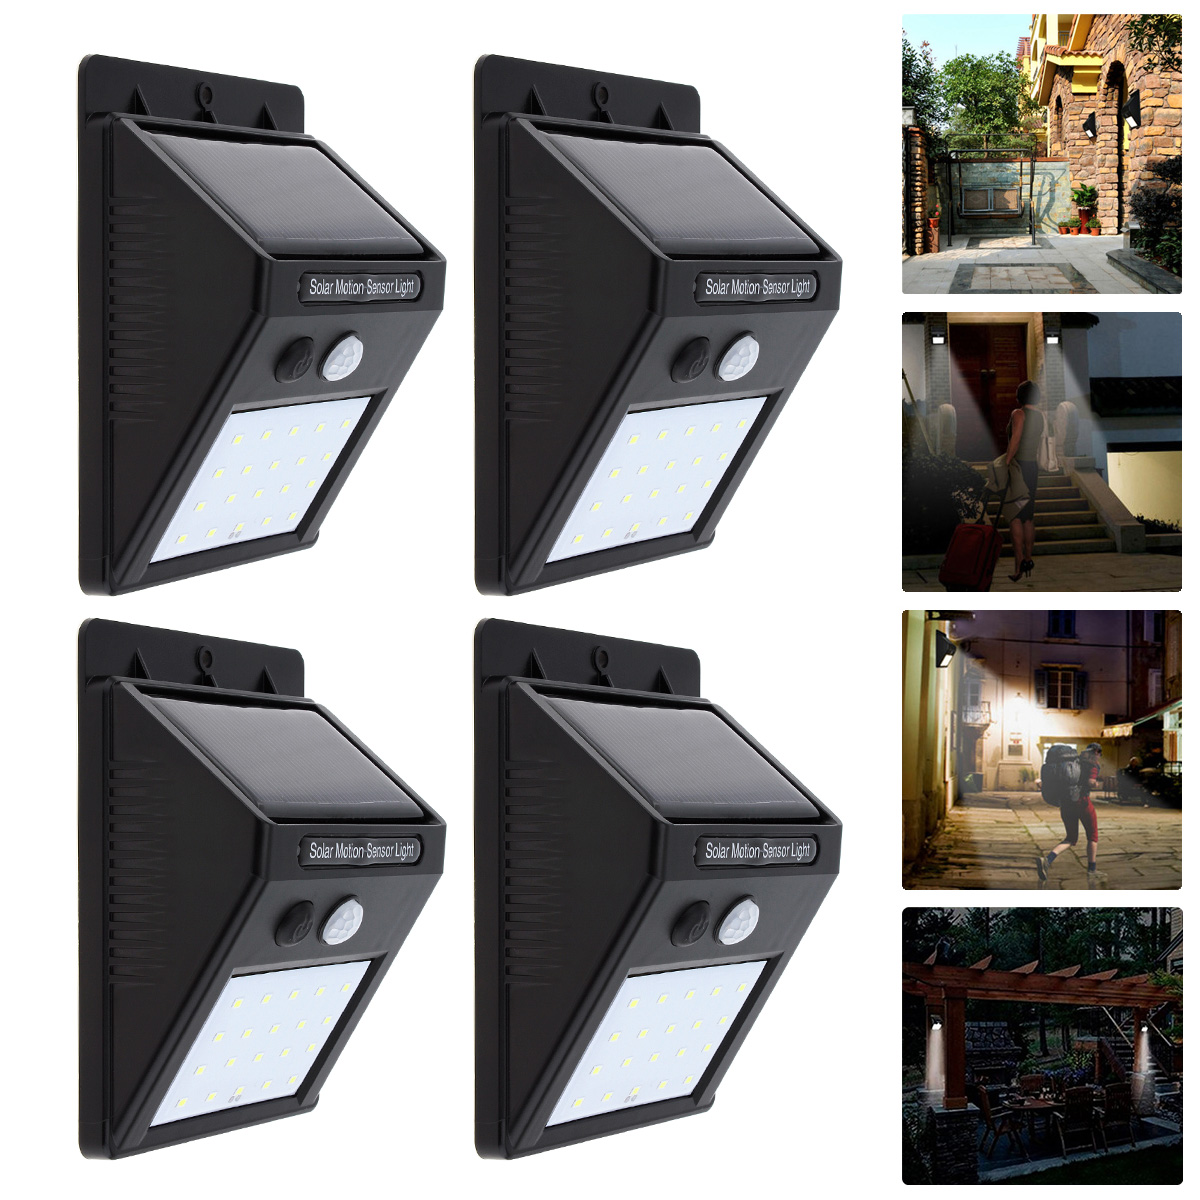 LED Solar Lamp Waterproof 1/2/4 pcs 20 LED Solar Panels Power PIR Motion Sensor LED Garden Light Outdoor Pathway Wall Light